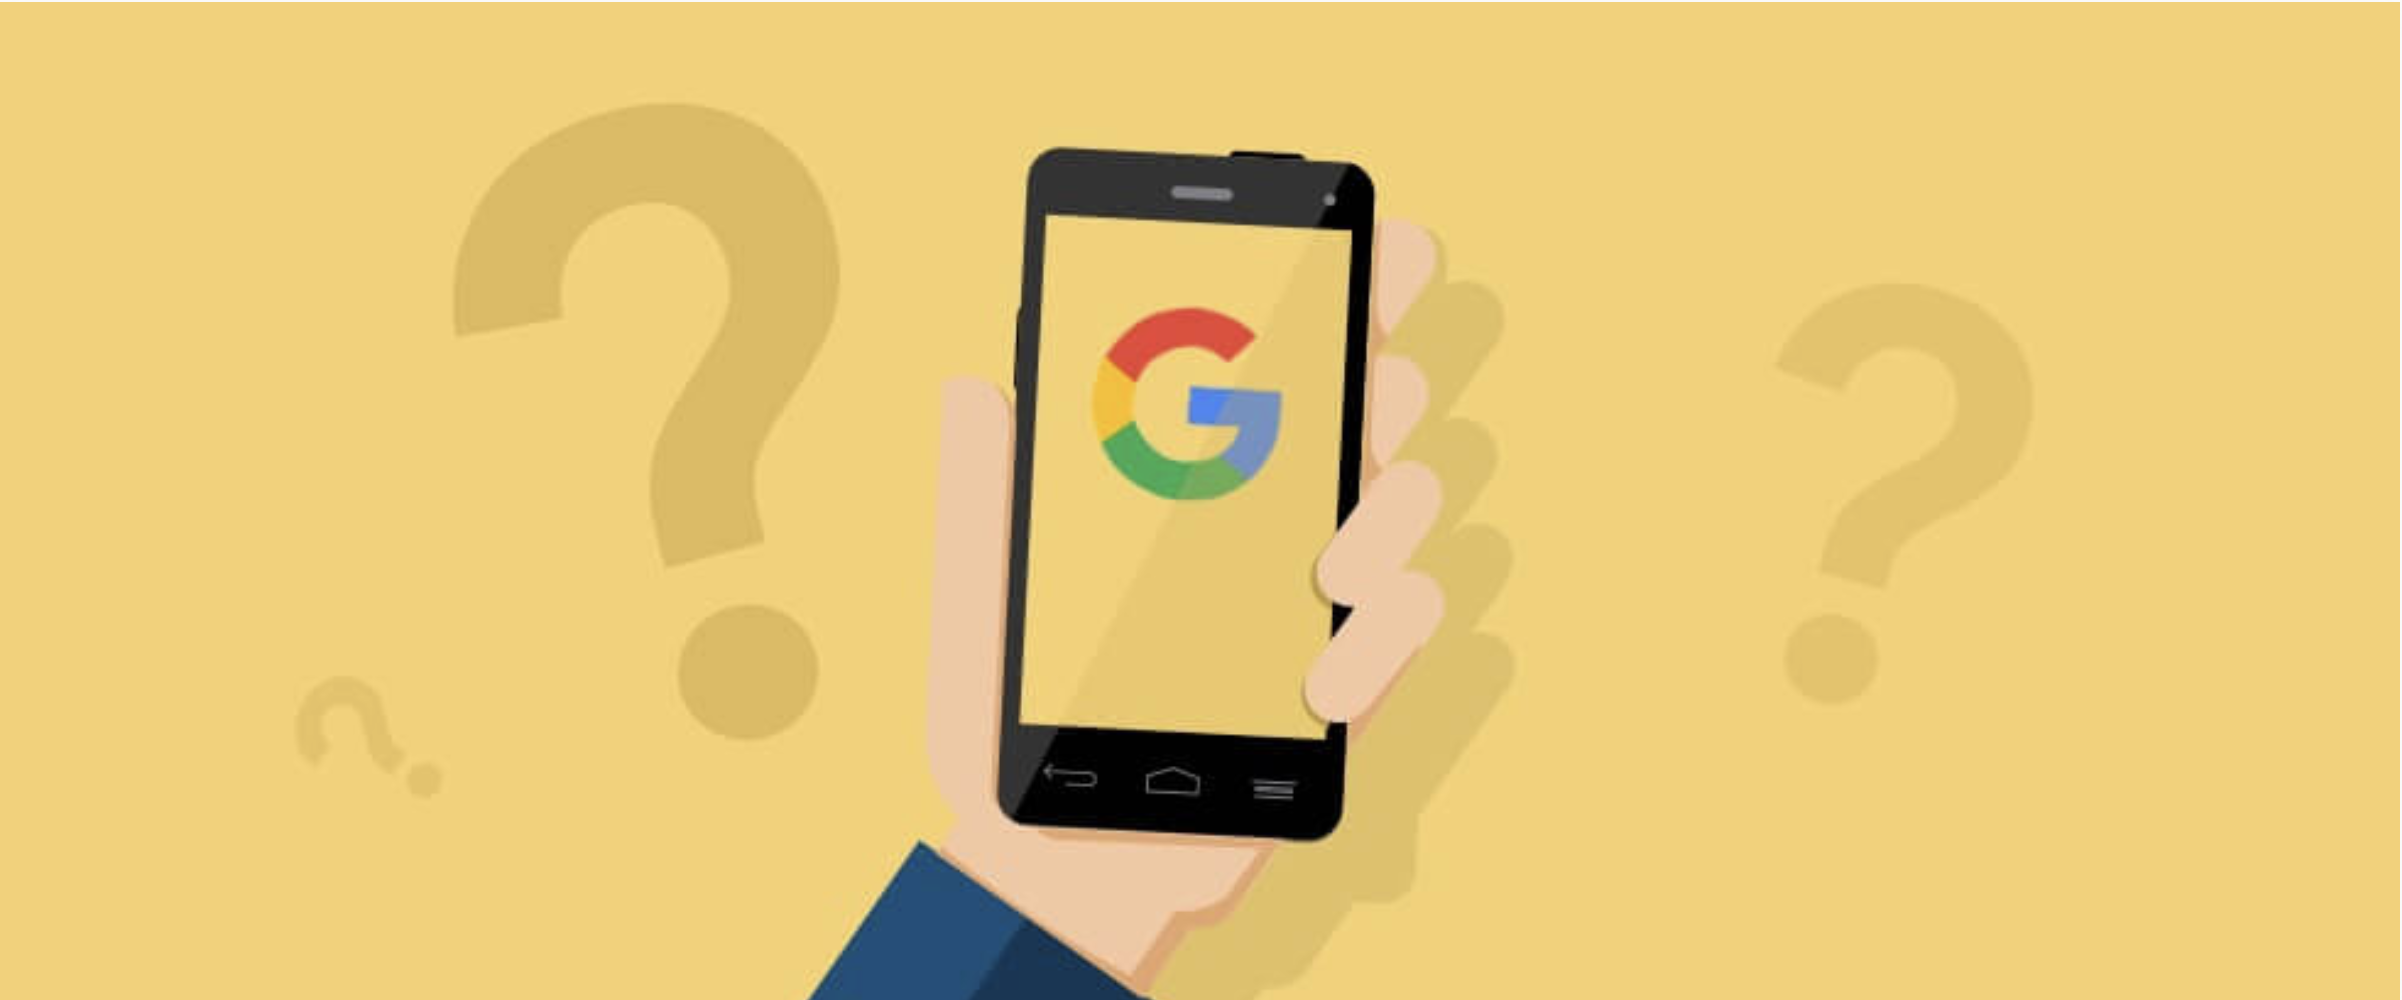 Google Updates Mobile Search: 2 Step Check to See if You're OK